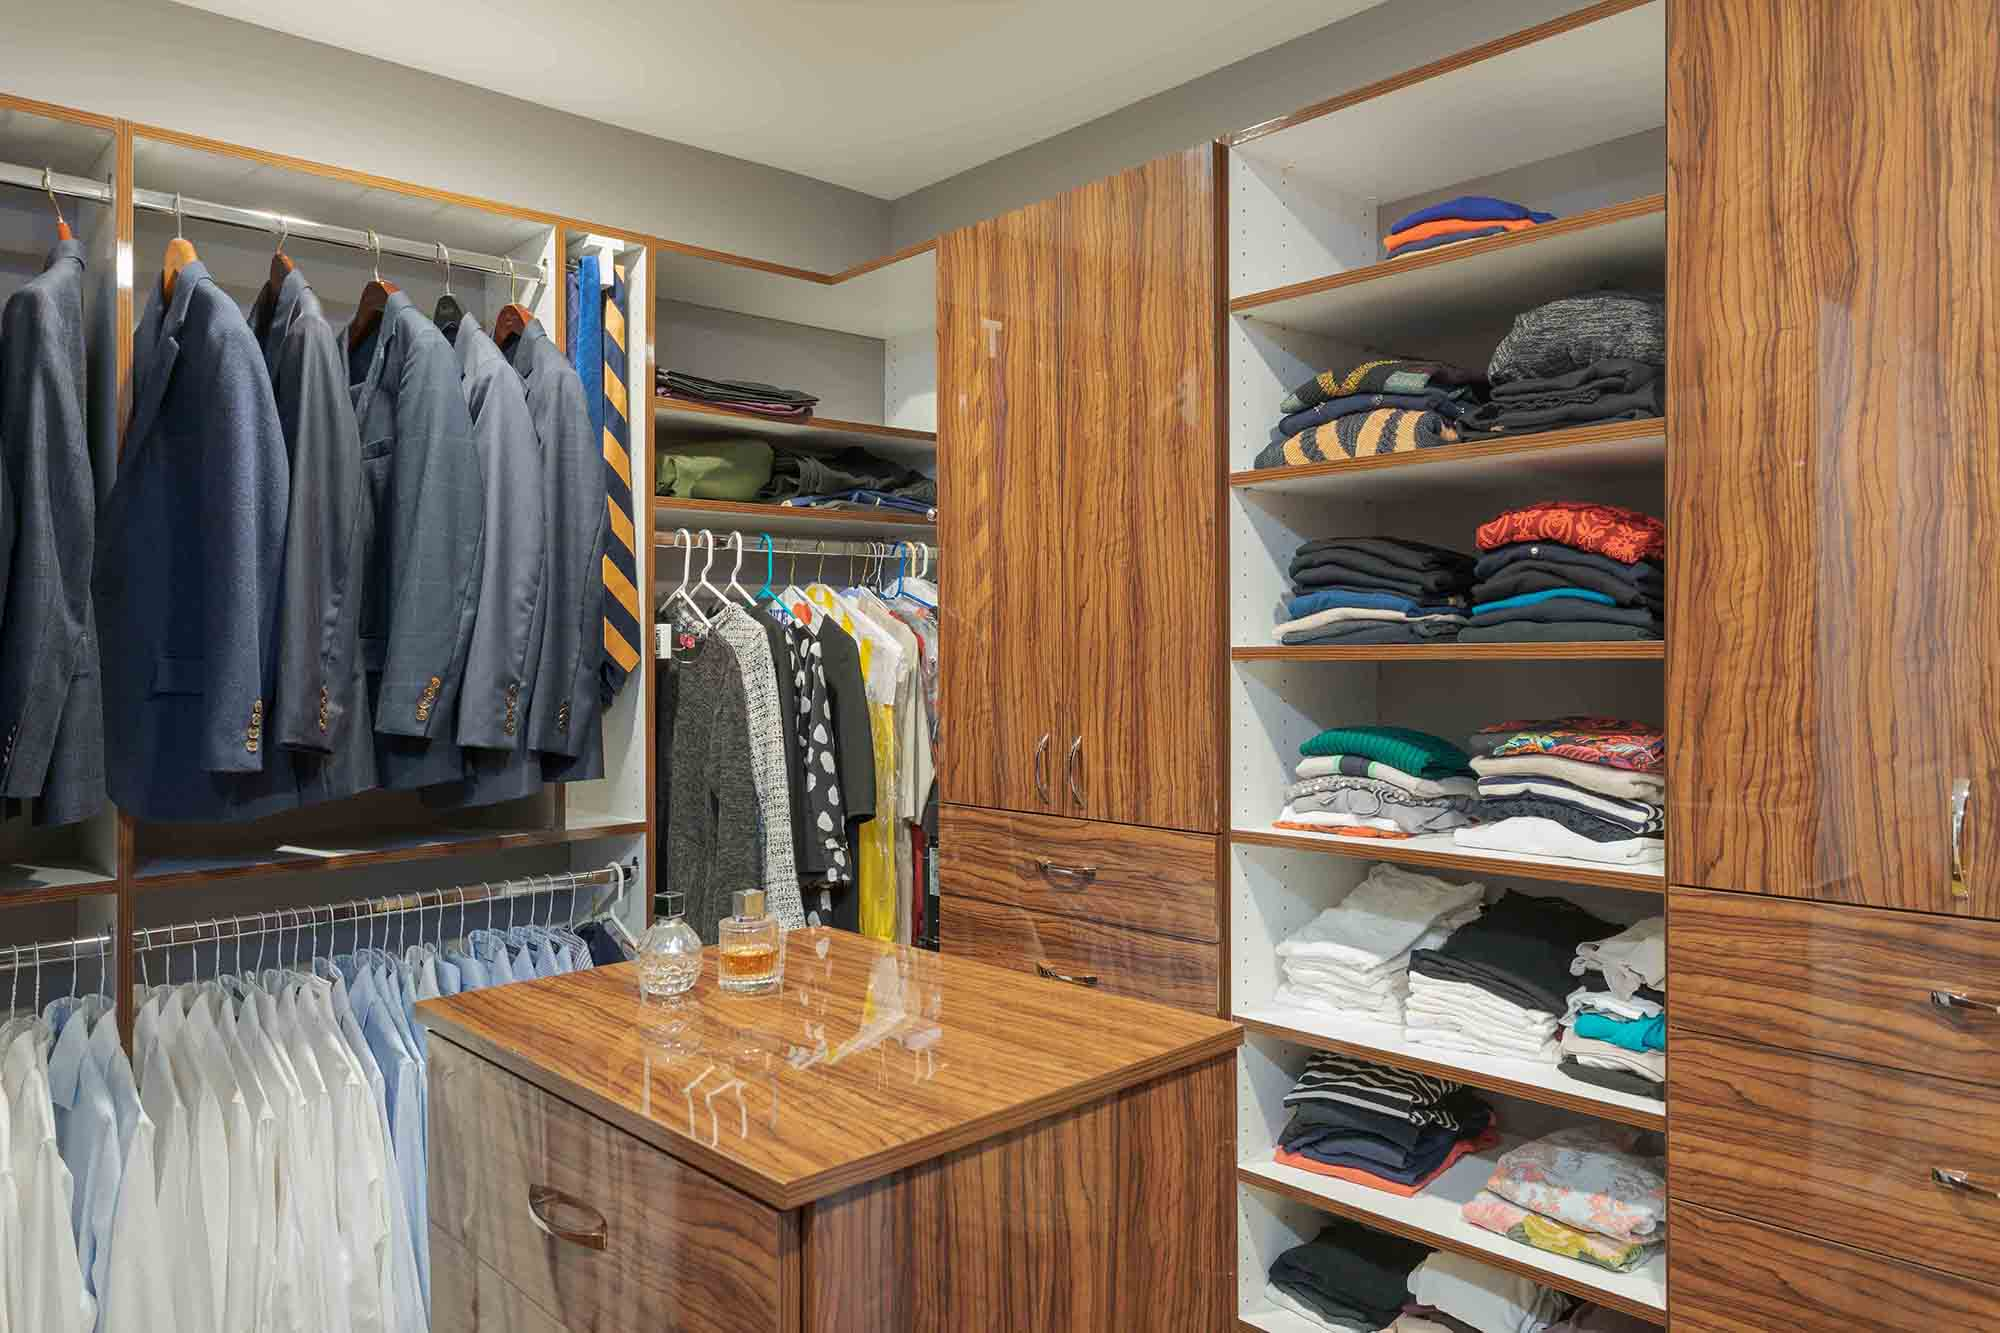 Organized jackets and pants in walk-in closet